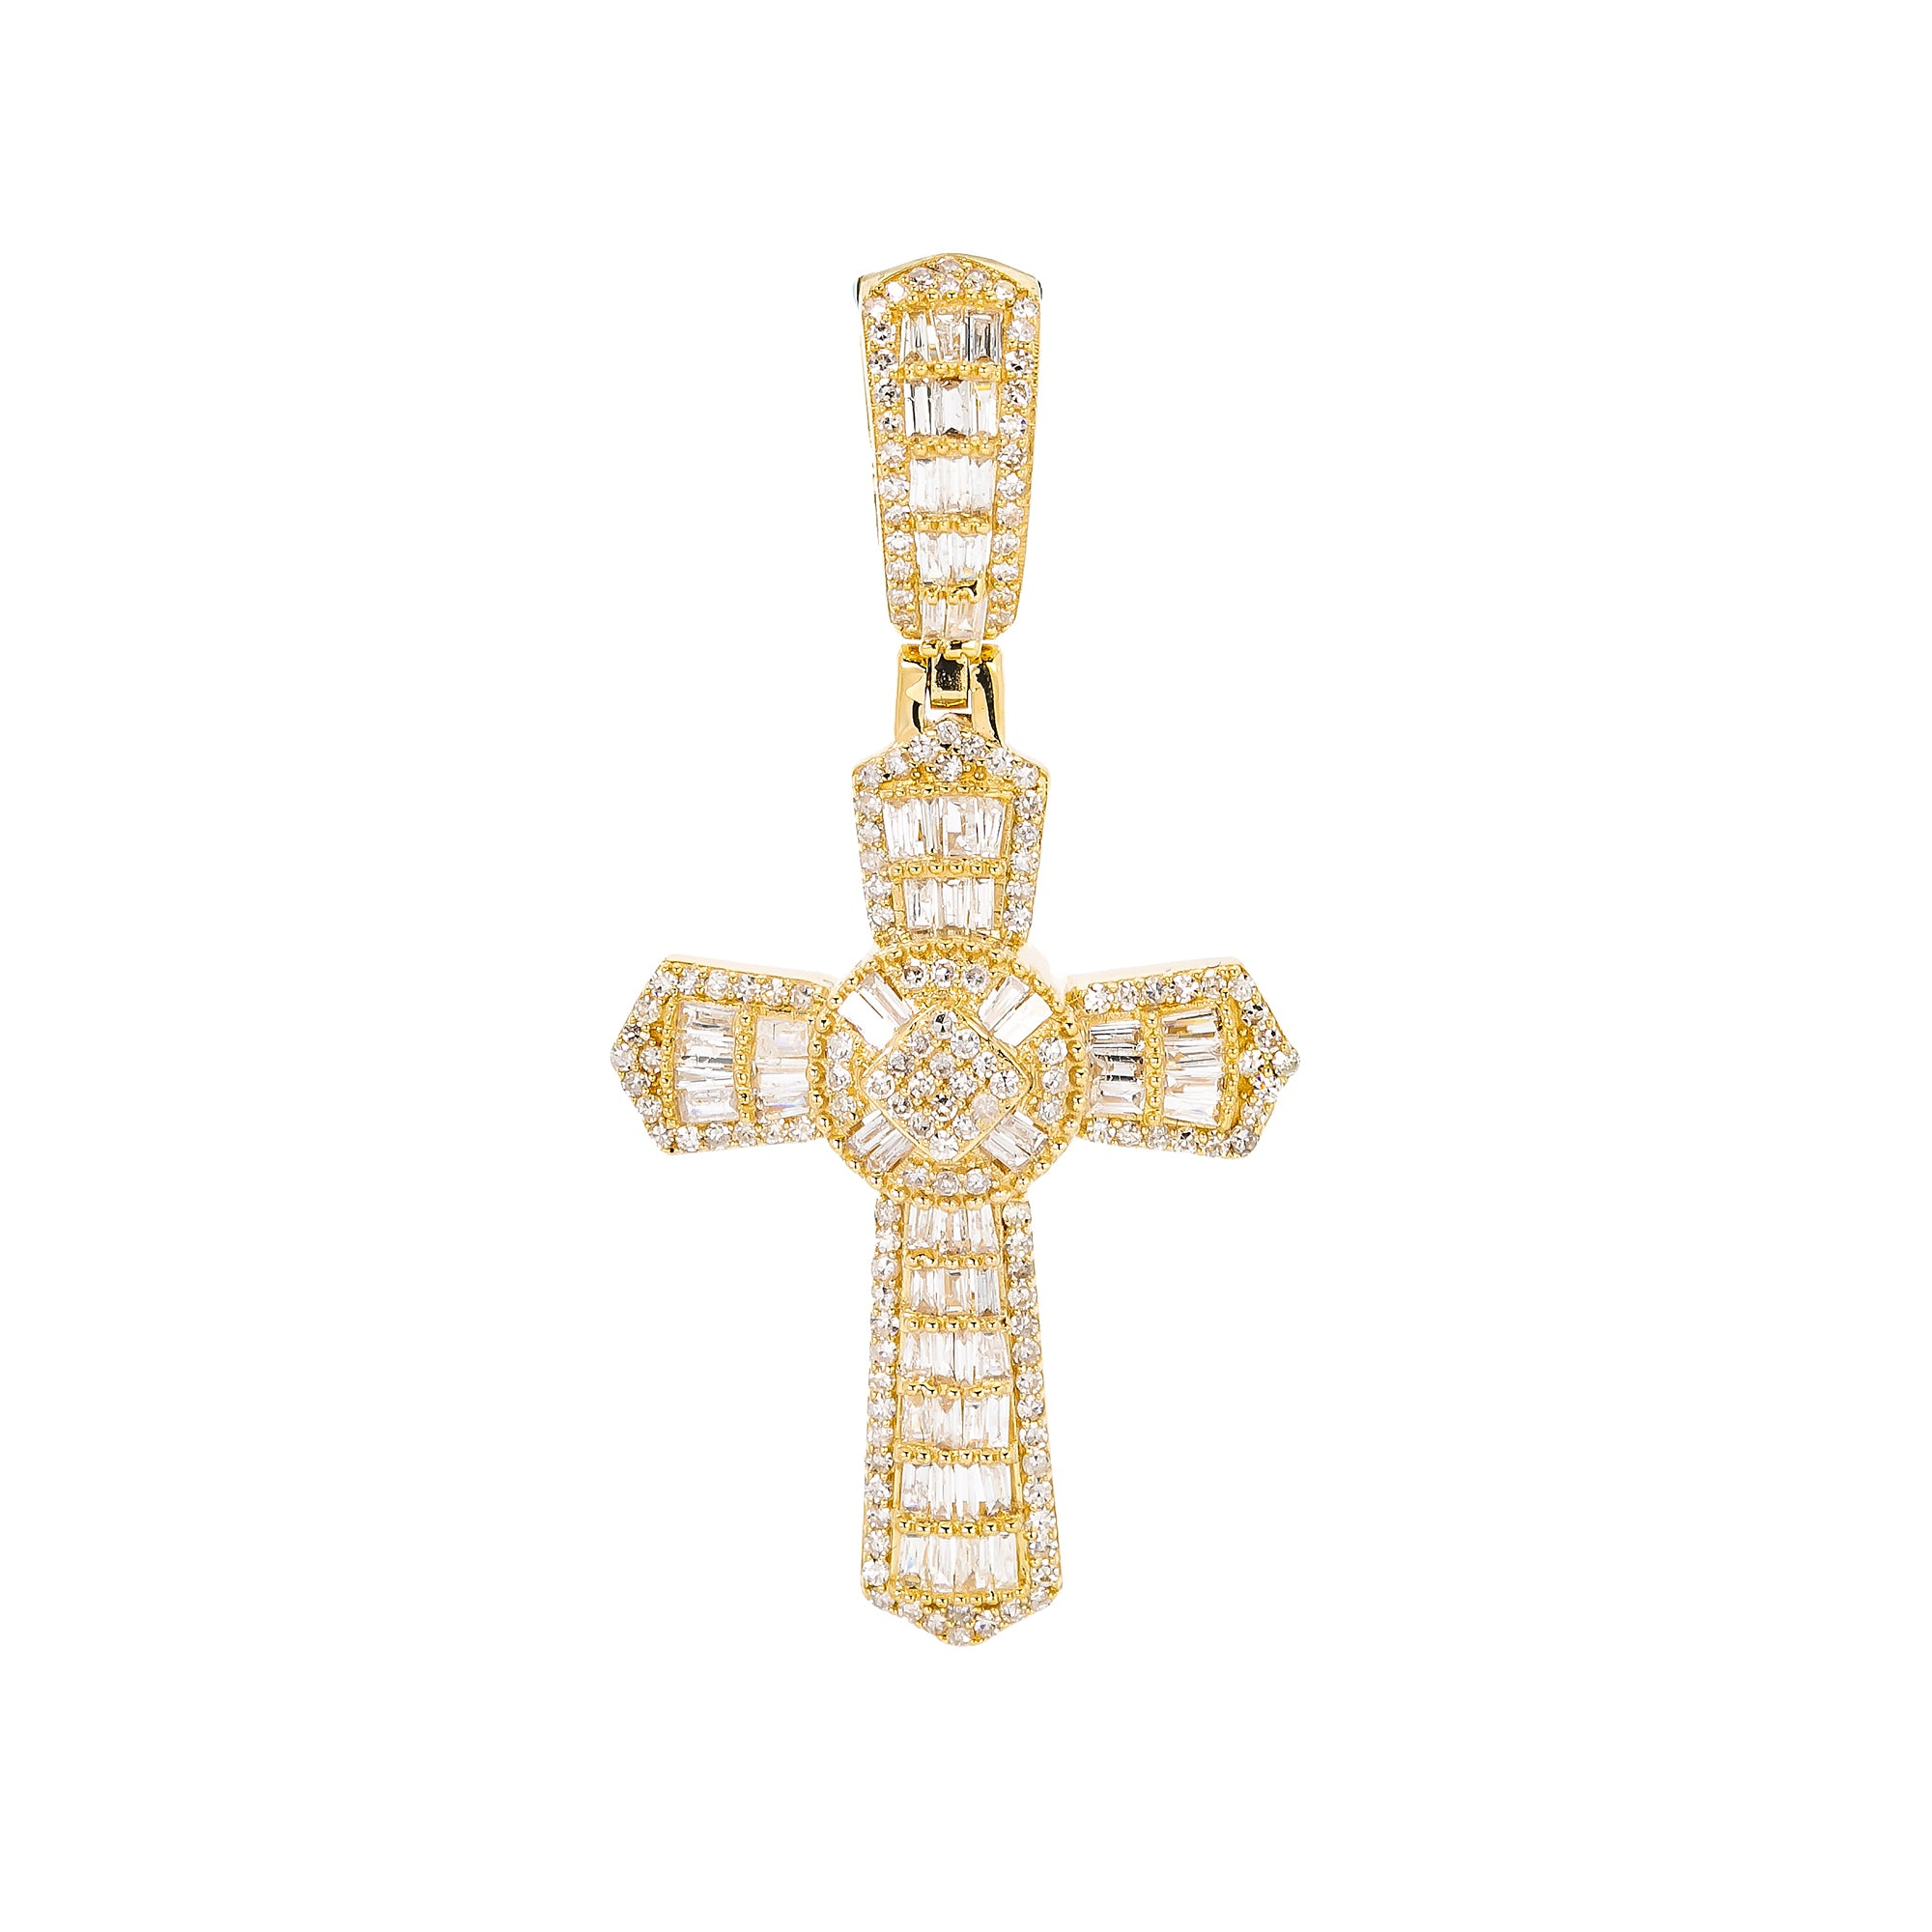 Unisex 14K Yellow Gold Cross Pendant with 0.92 CT Diamonds